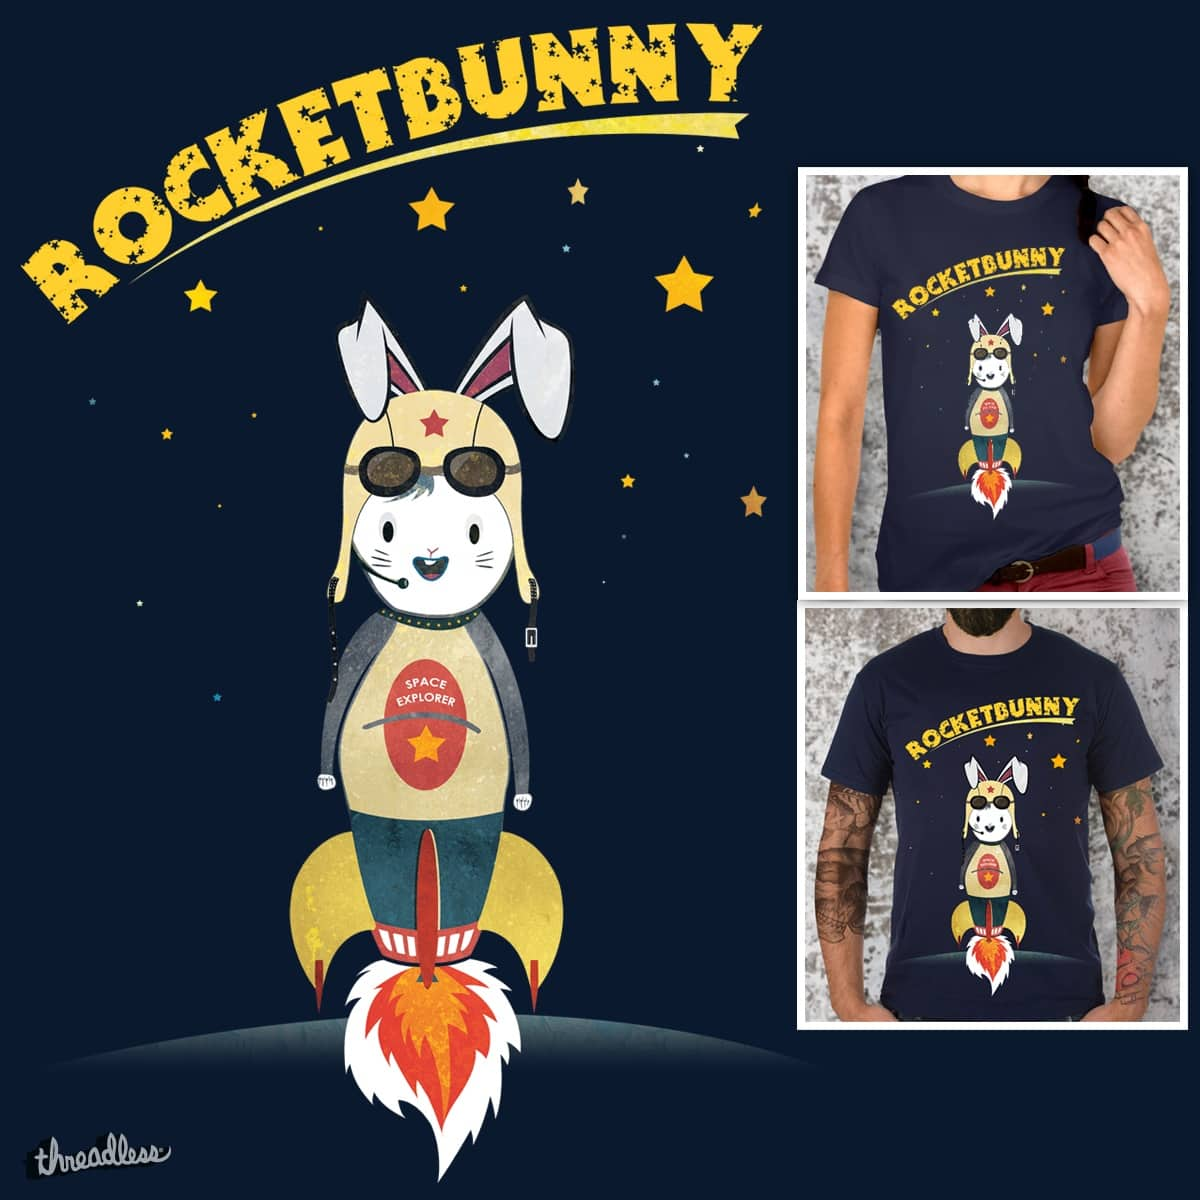 RocketBunny by lelelude on Threadless